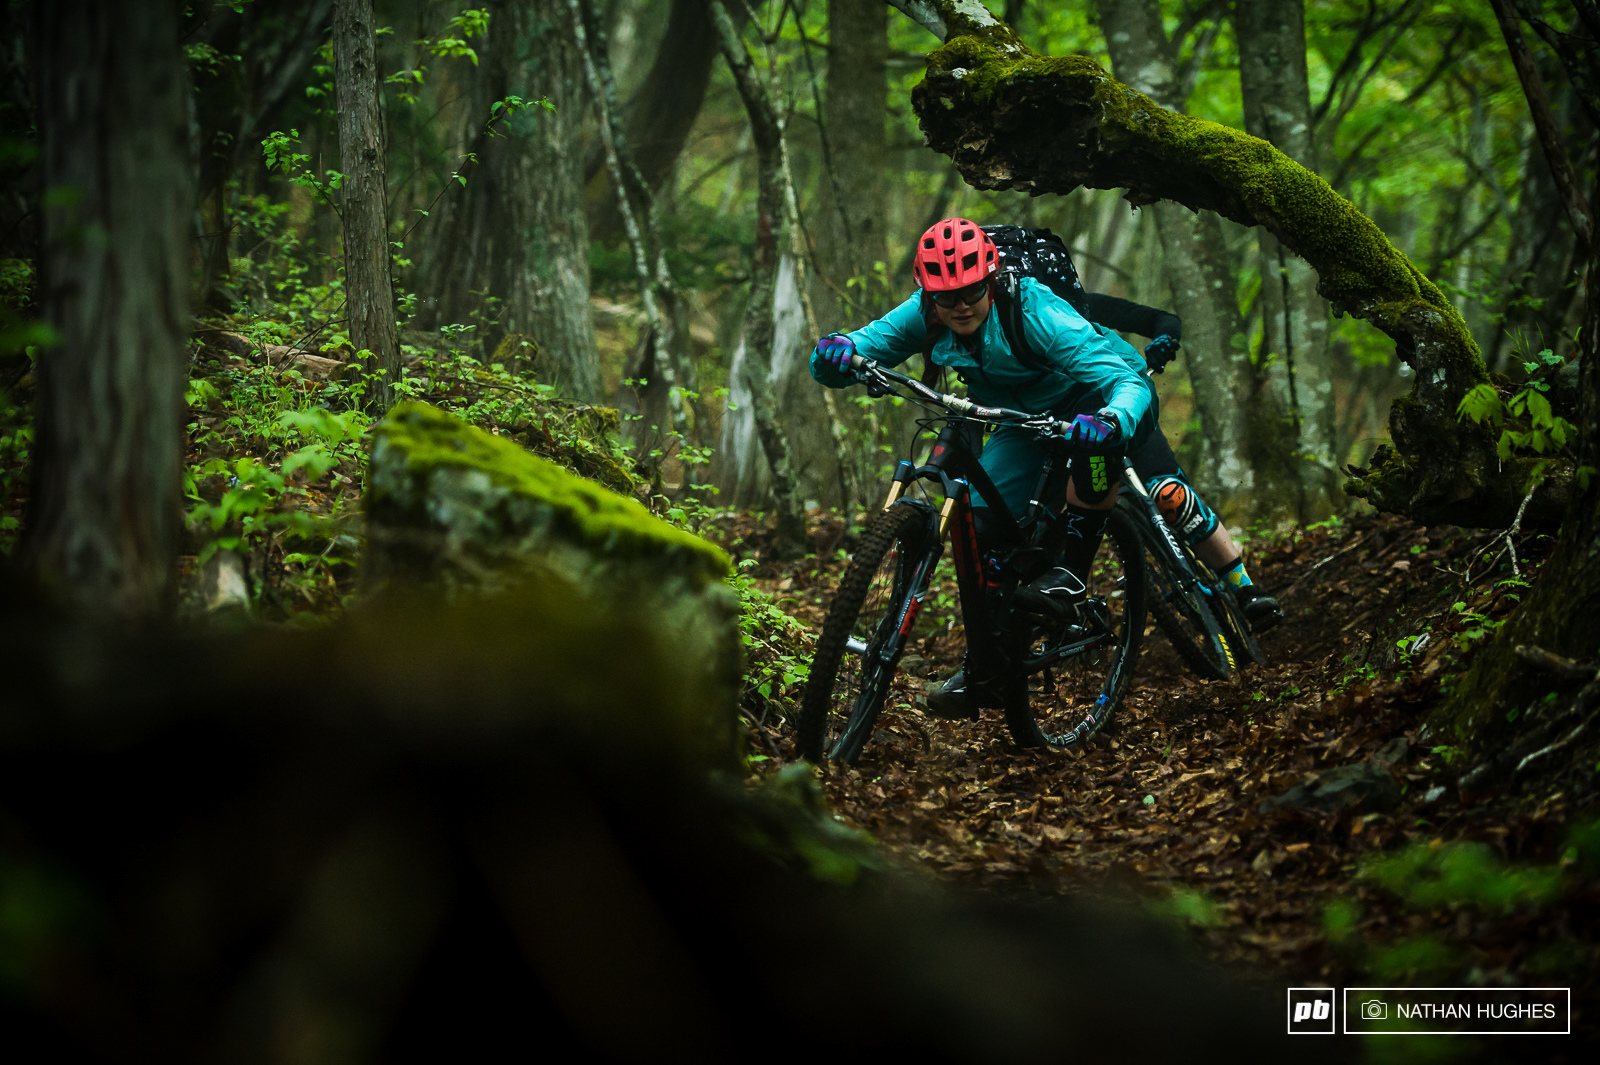 Images for Land of the Riding Fun - Bernardo Cruz and Steffi Marth in Japan article